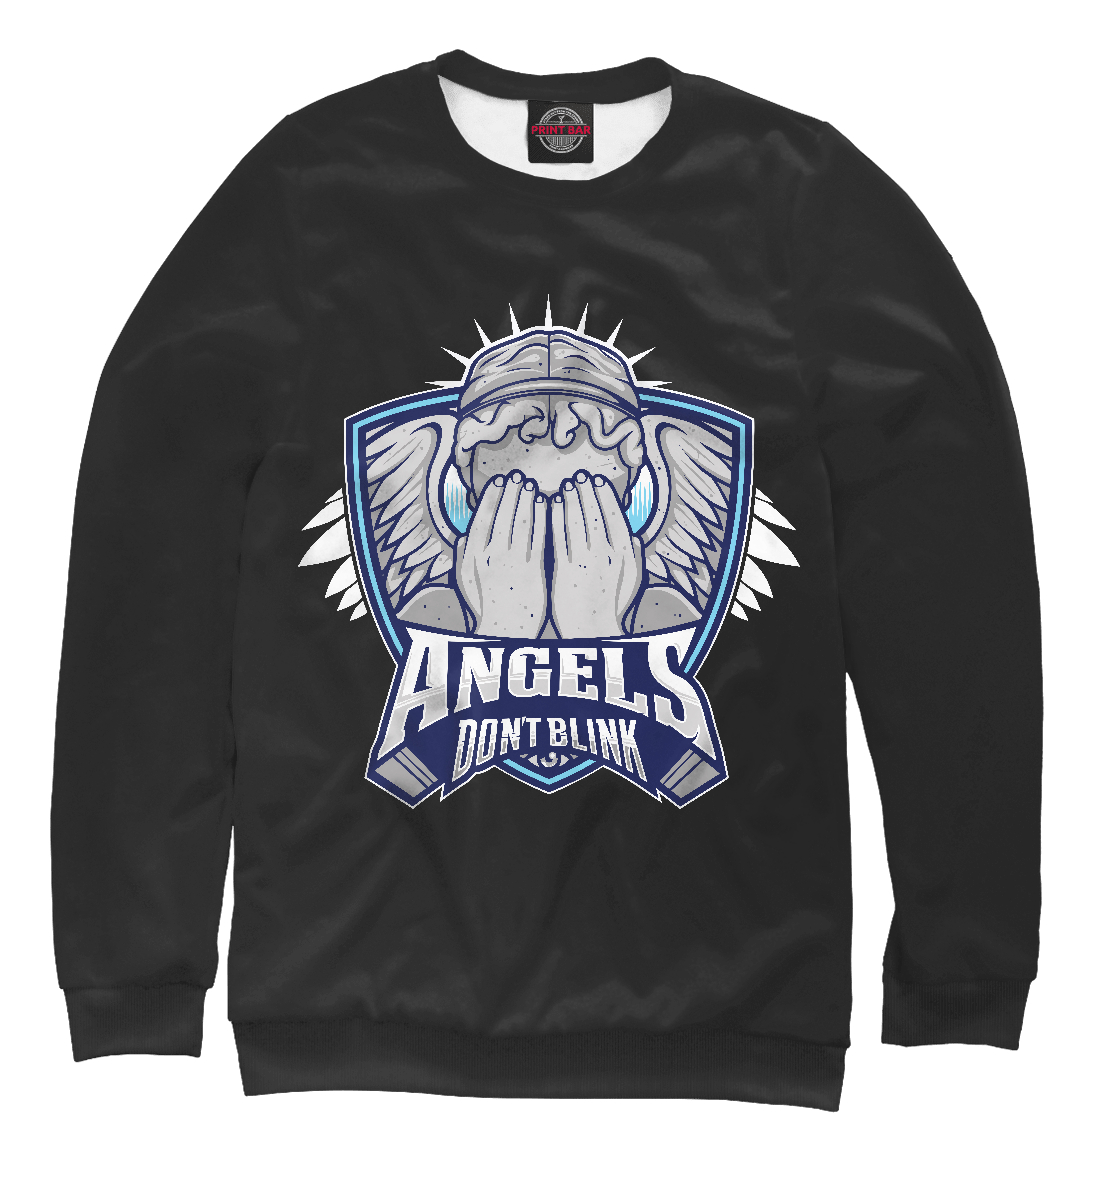 Купить Angels Dont Blink, Printbar, Свитшоты, HIP-896180-swi-2